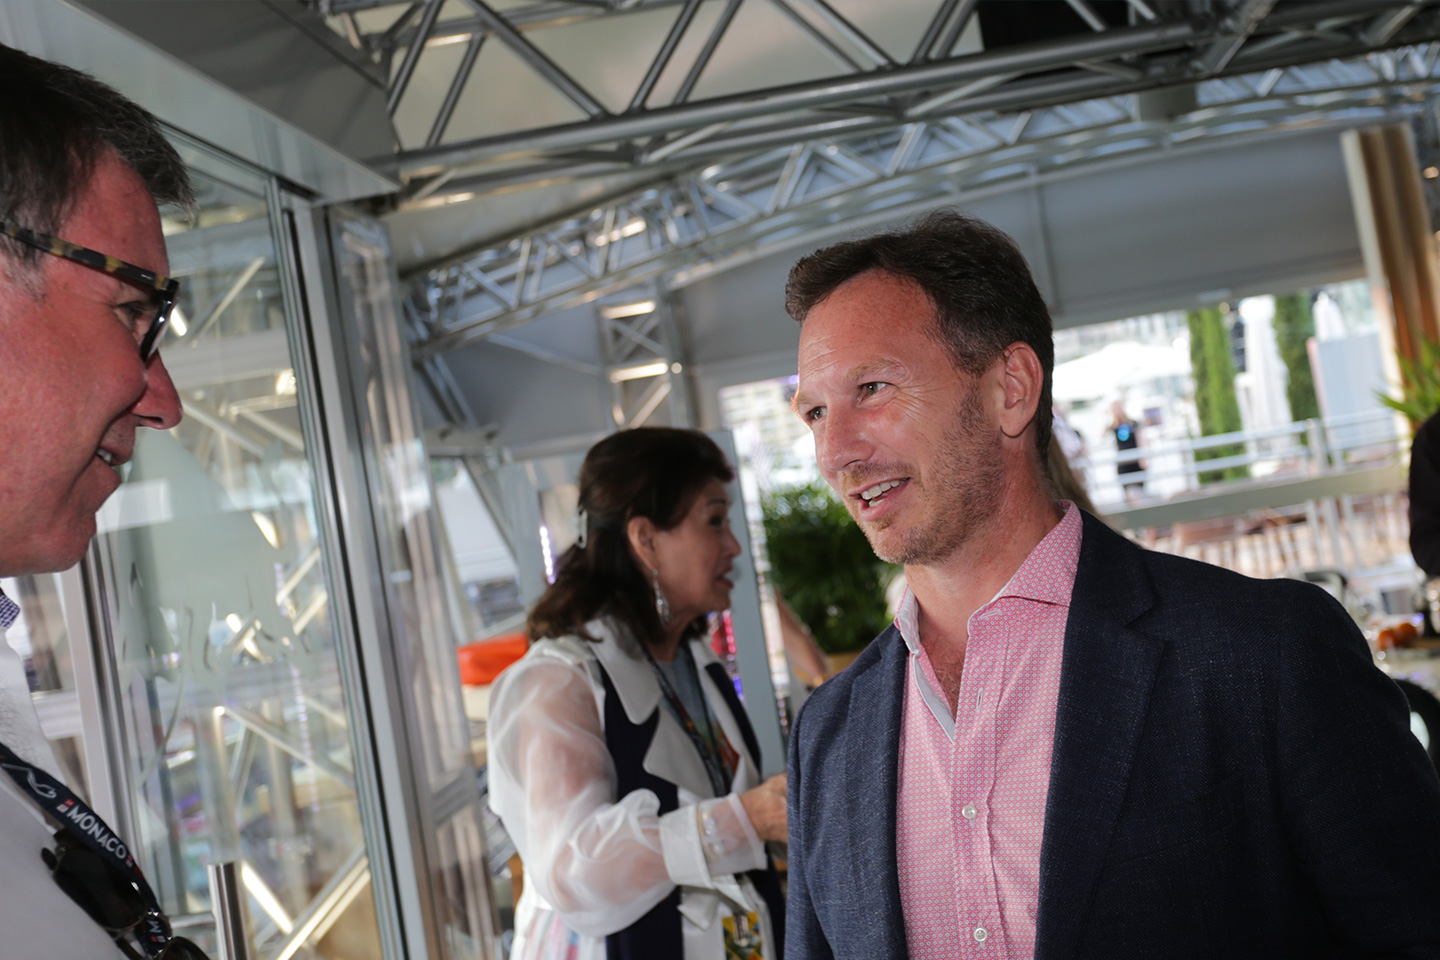 Christian Horner at the Monaco Racing Weekend Reception, 2017.